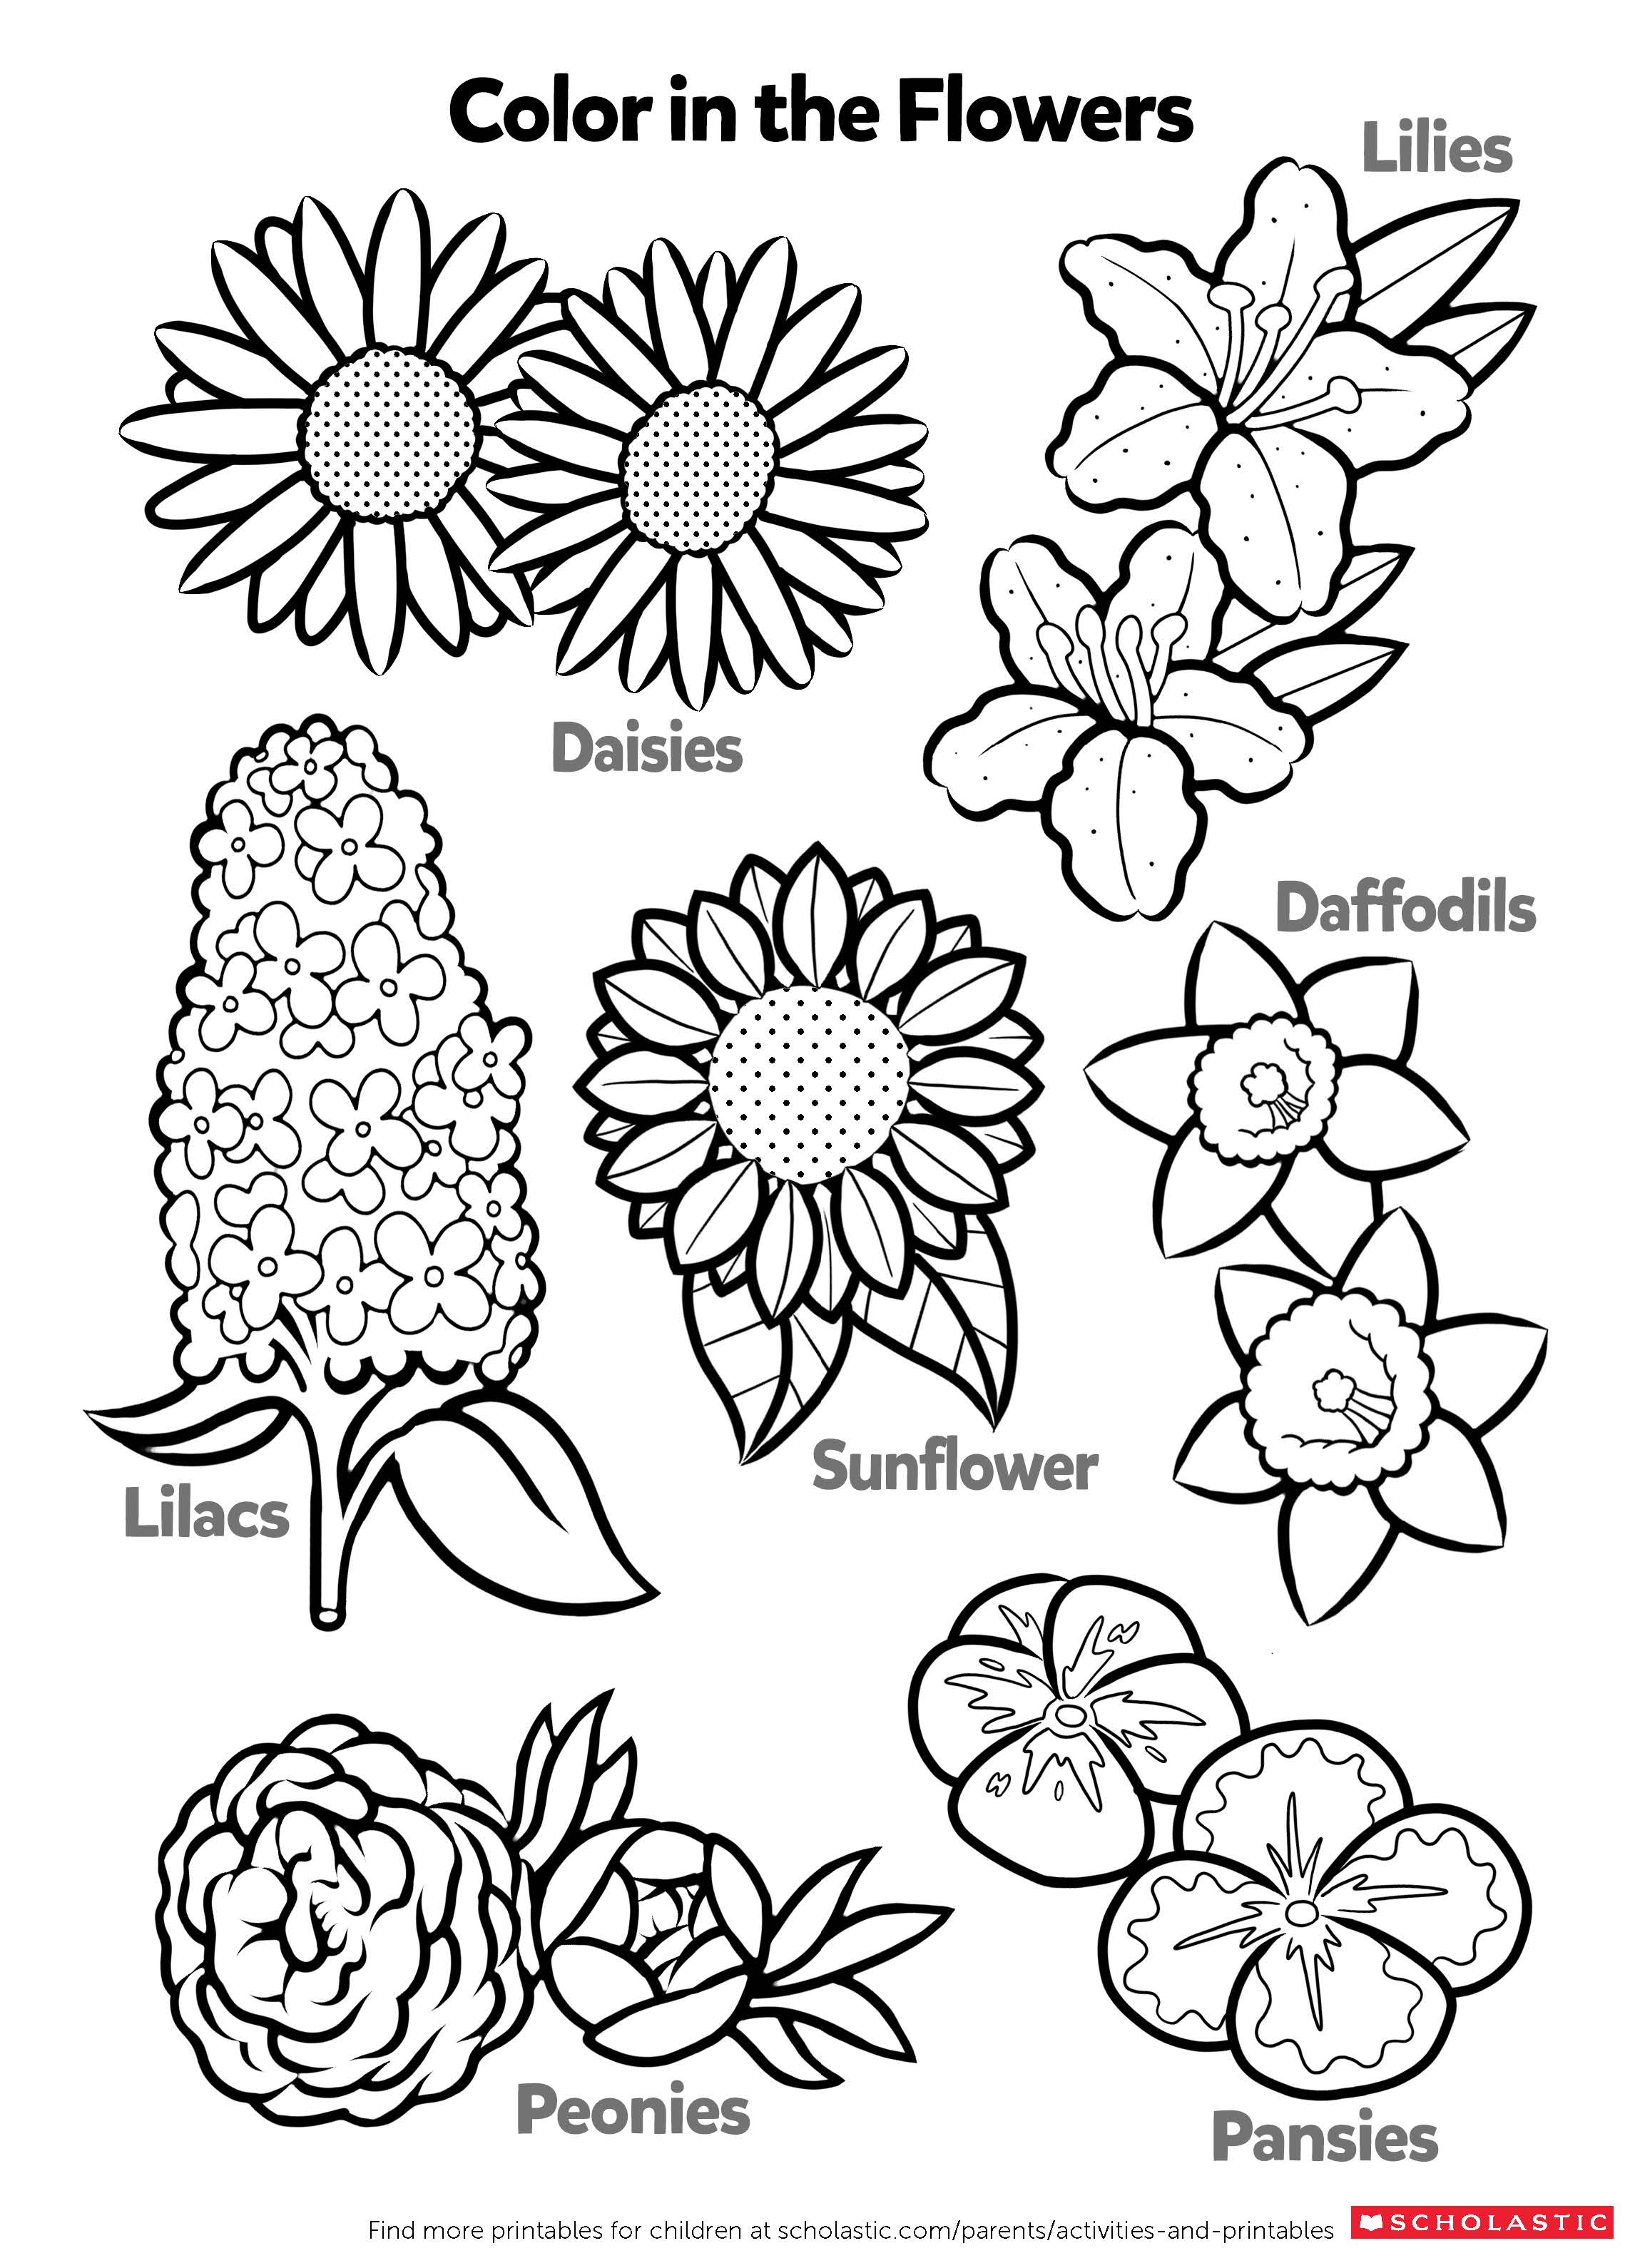 coloring printable learn about flowers by coloring worksheets printables coloring printable